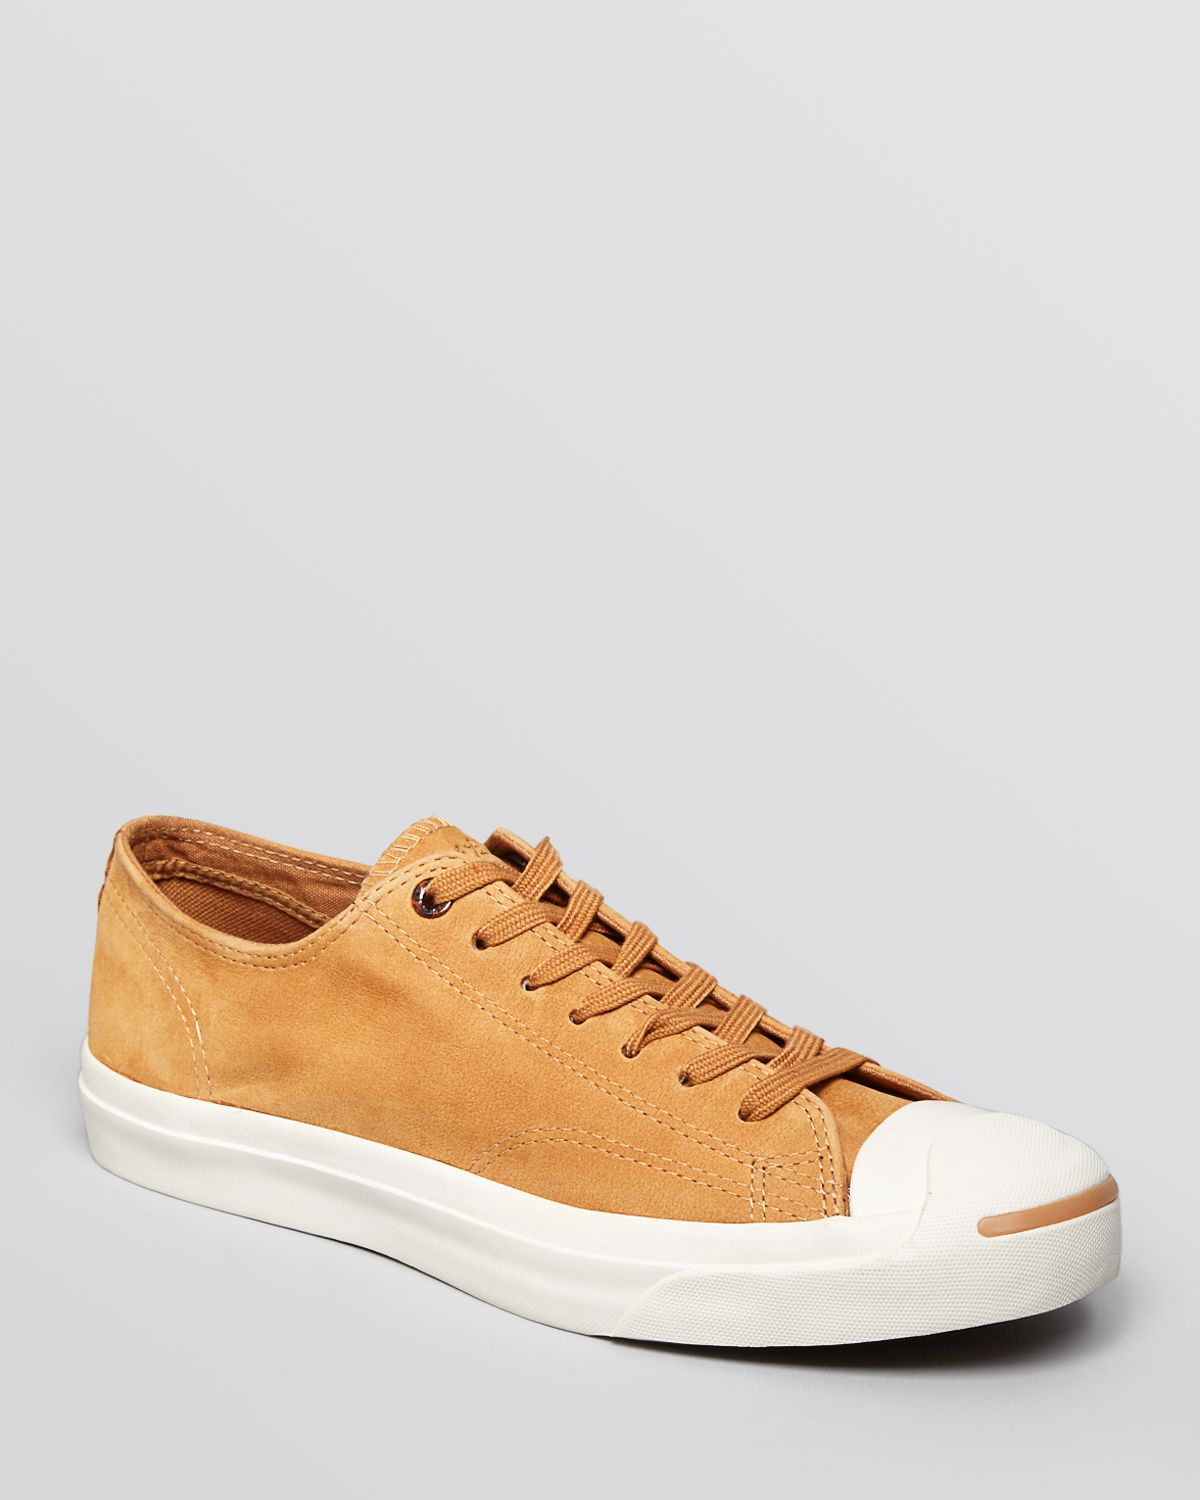 0ce8176325de Lyst - Converse Jack Purcell Suede Sneakers in Brown for Men